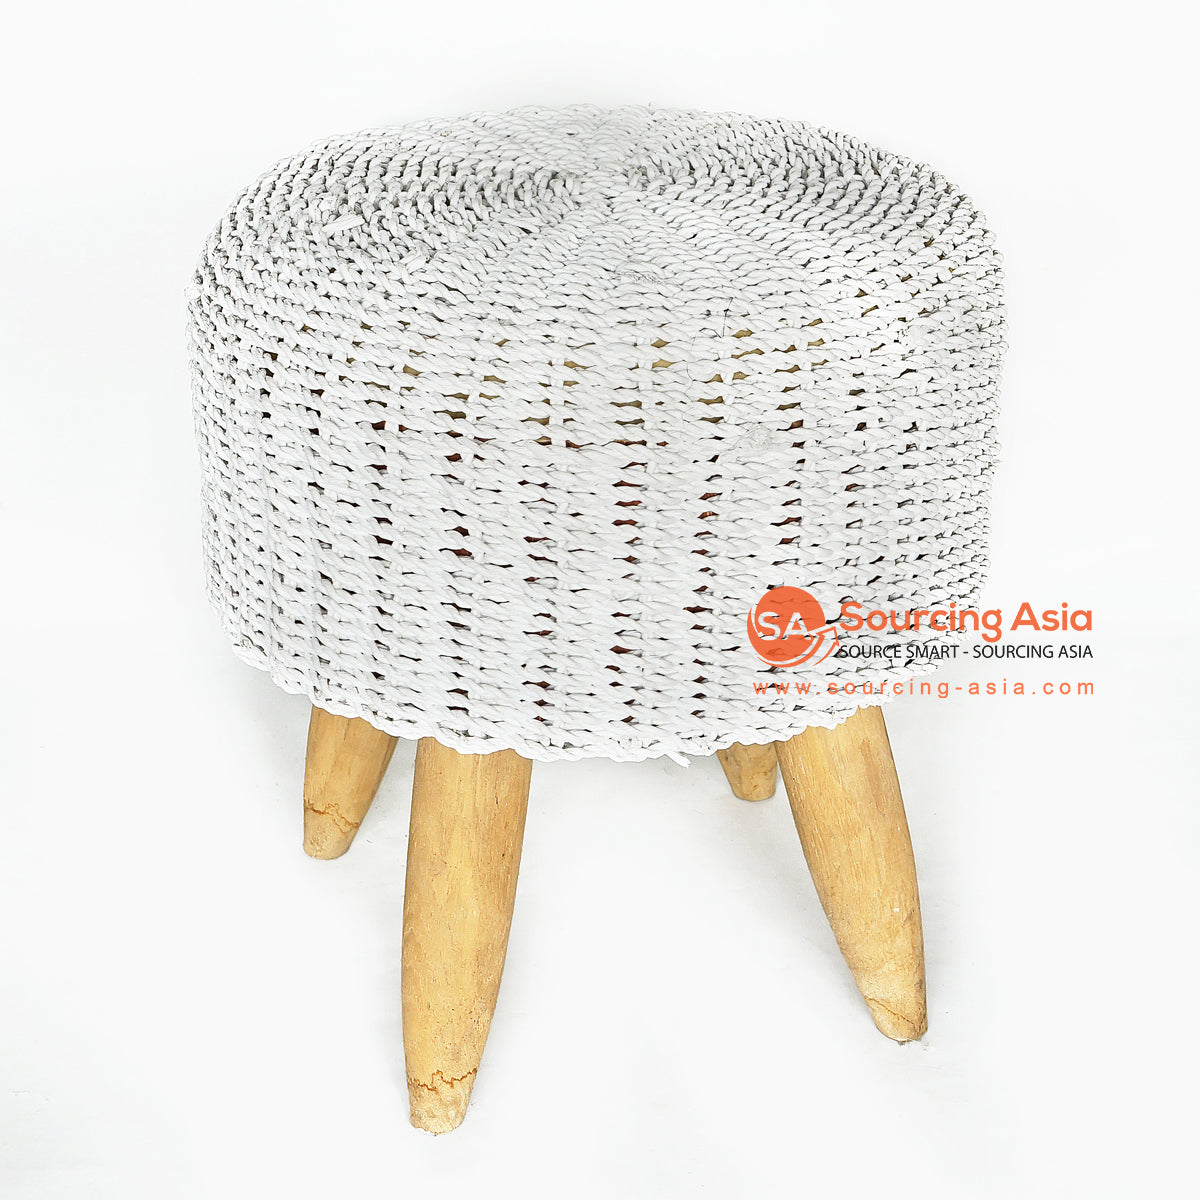 MRC153 NATURAL WOODEN ROUND STOOL WITH WHITE SEAGRASS SEAT